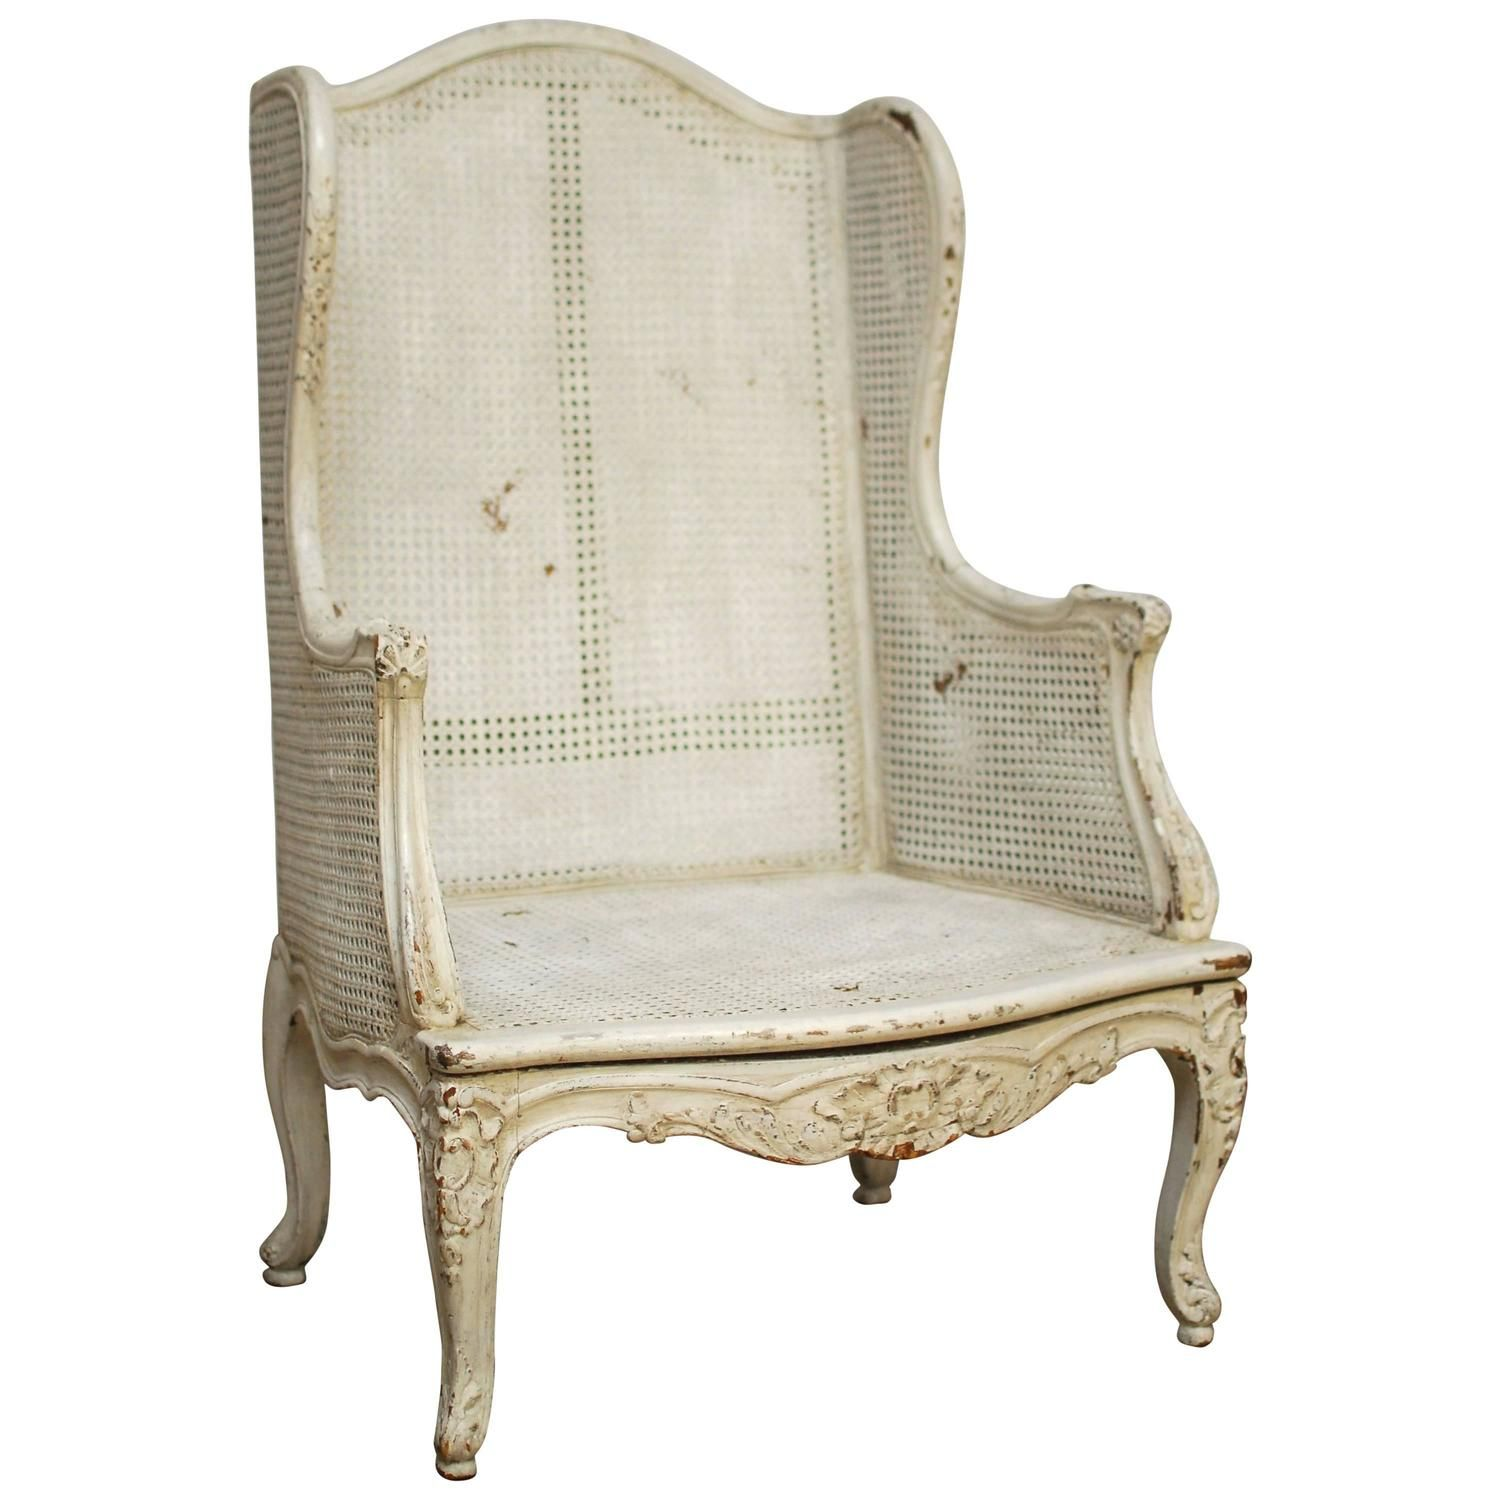 Louis XV Cane Wingback Bergere Chair 1 Muebles de madera